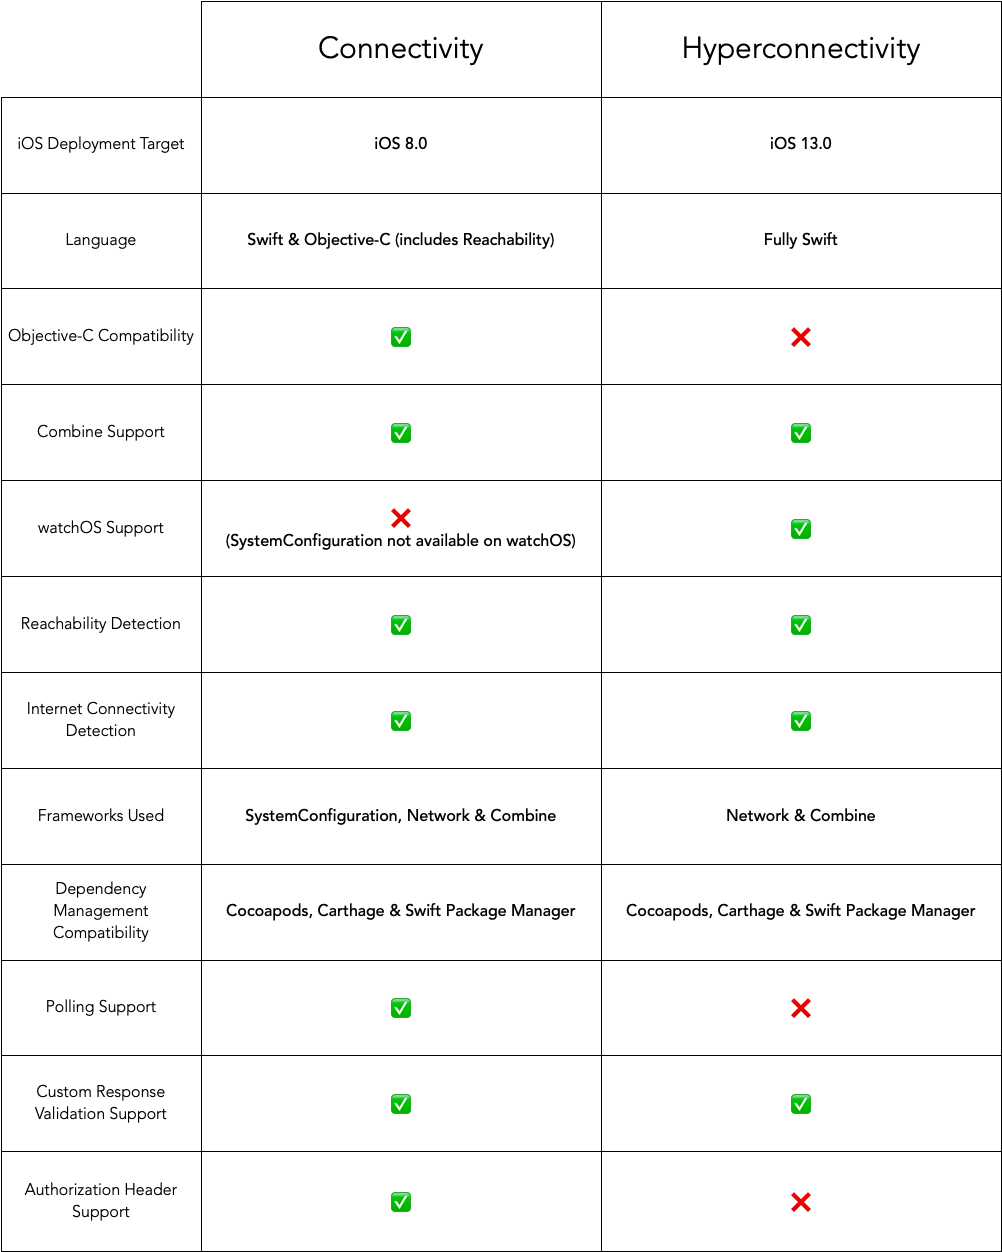 Comparison with Connectivity Table